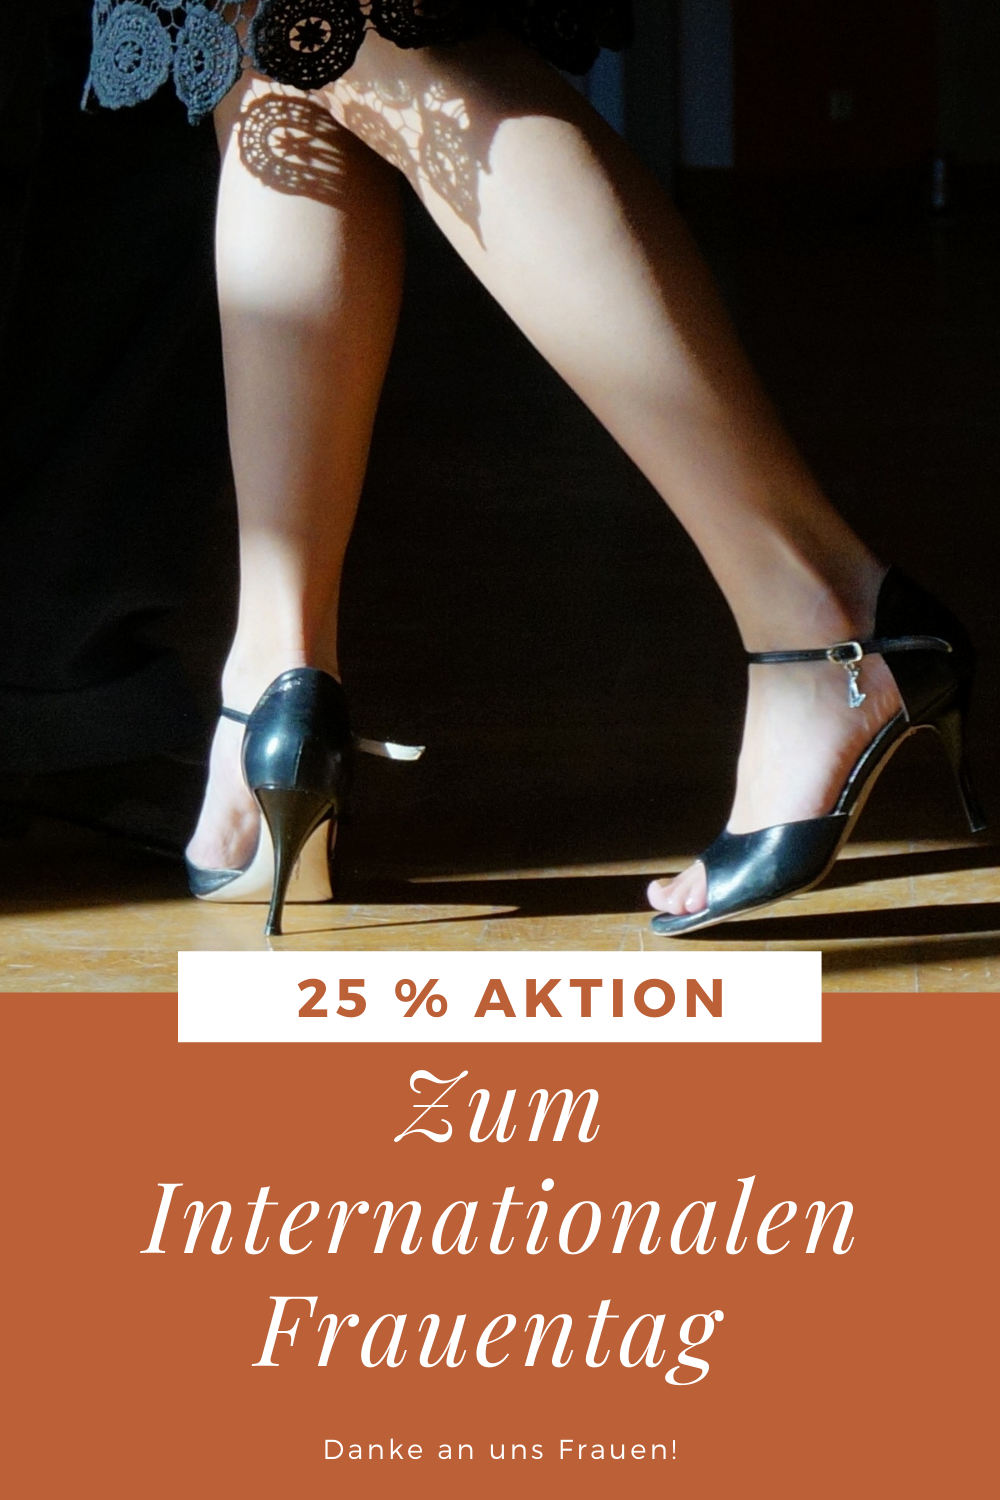 Internationaler Frauentag 25 % Aktion